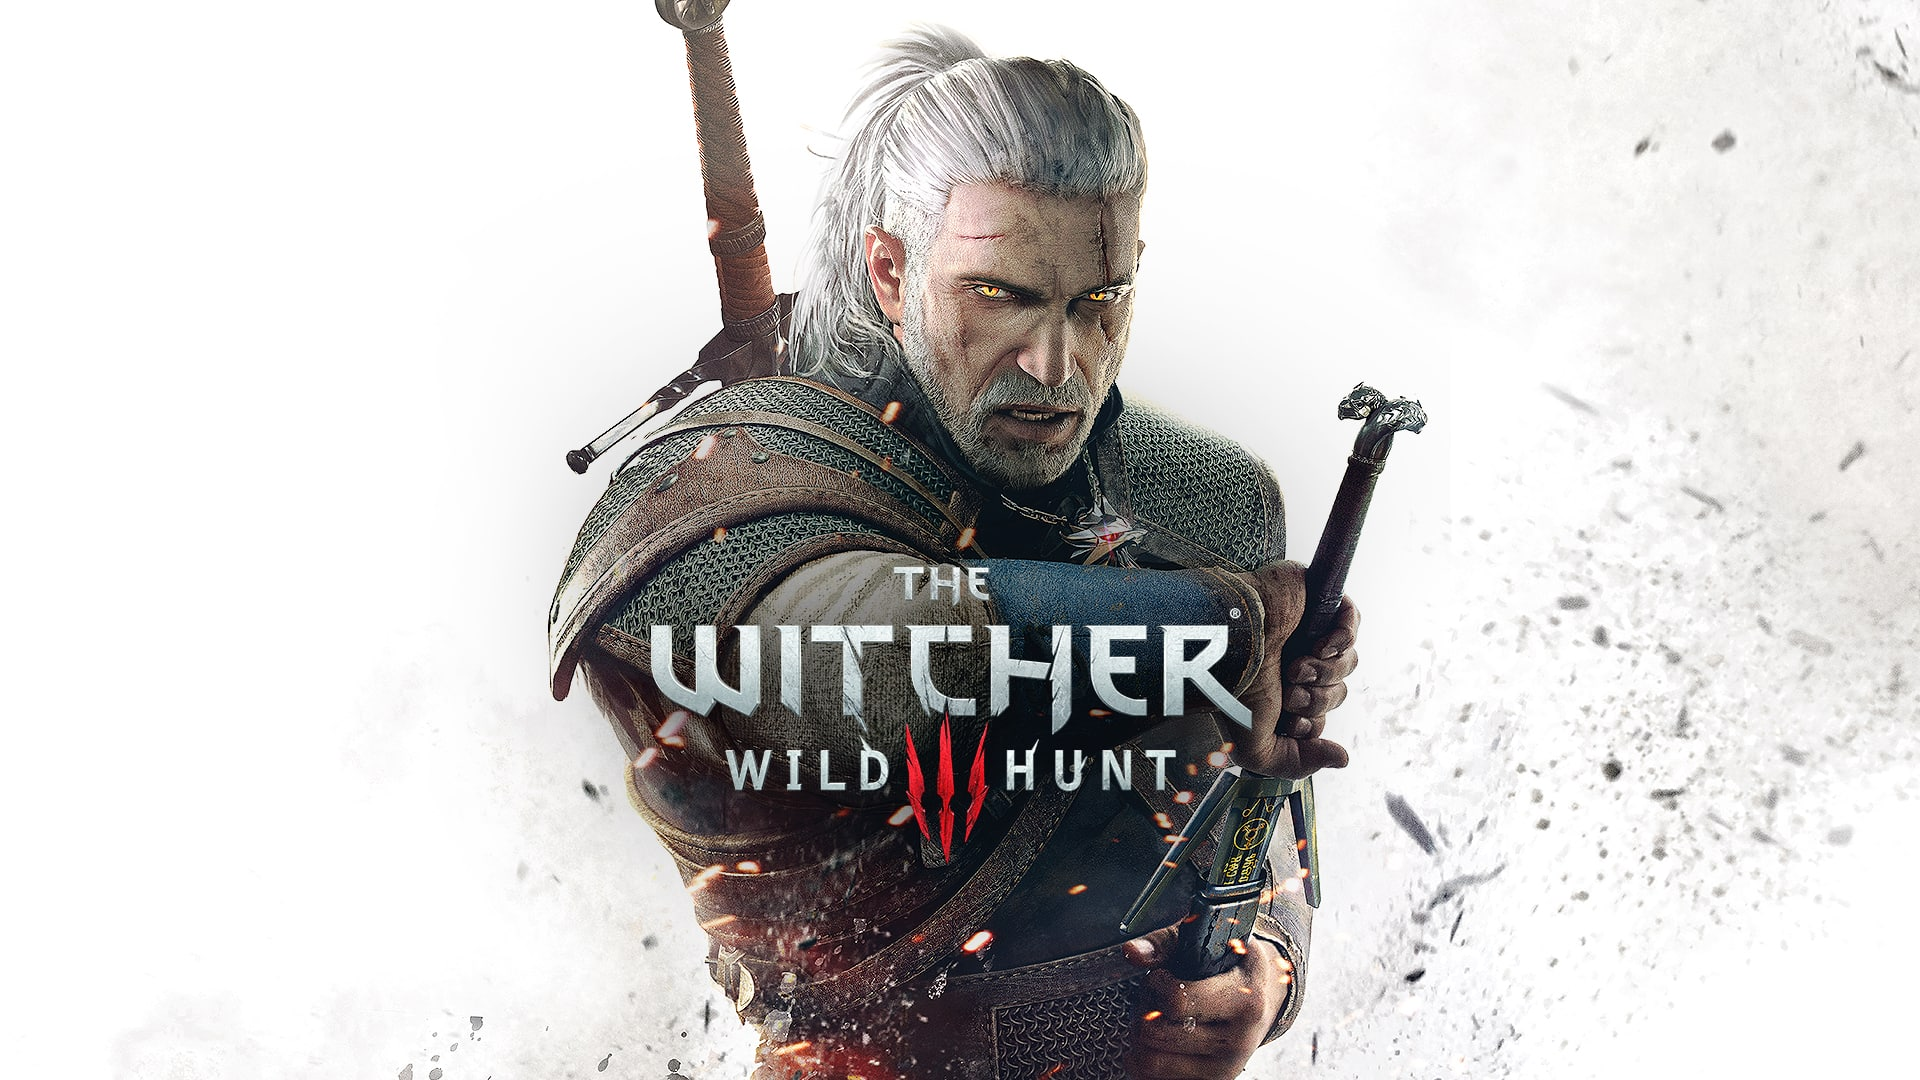 The Witcher 3: Wild Hunt (Nintendo Switch Digital): Standard $23.99 or Complete Edition $35.99 @ Nintendo eShop